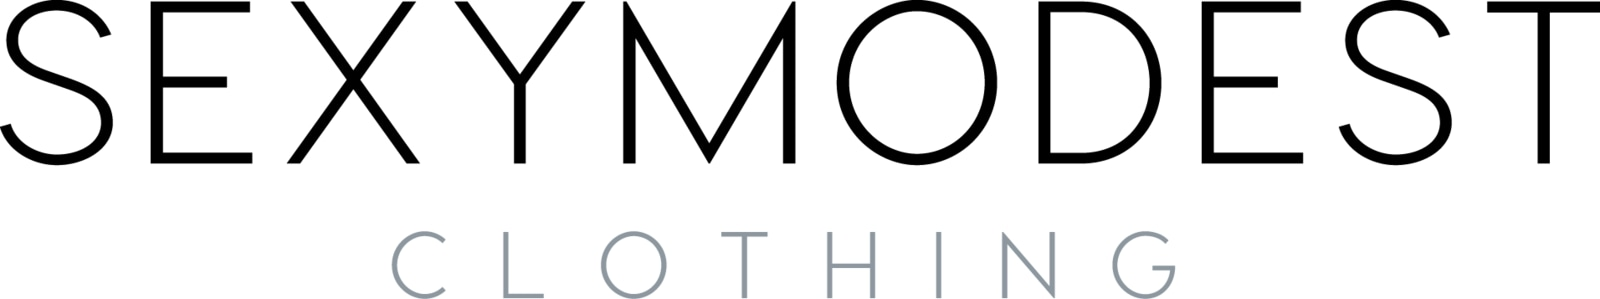 SexyModest Boutique Promo Code